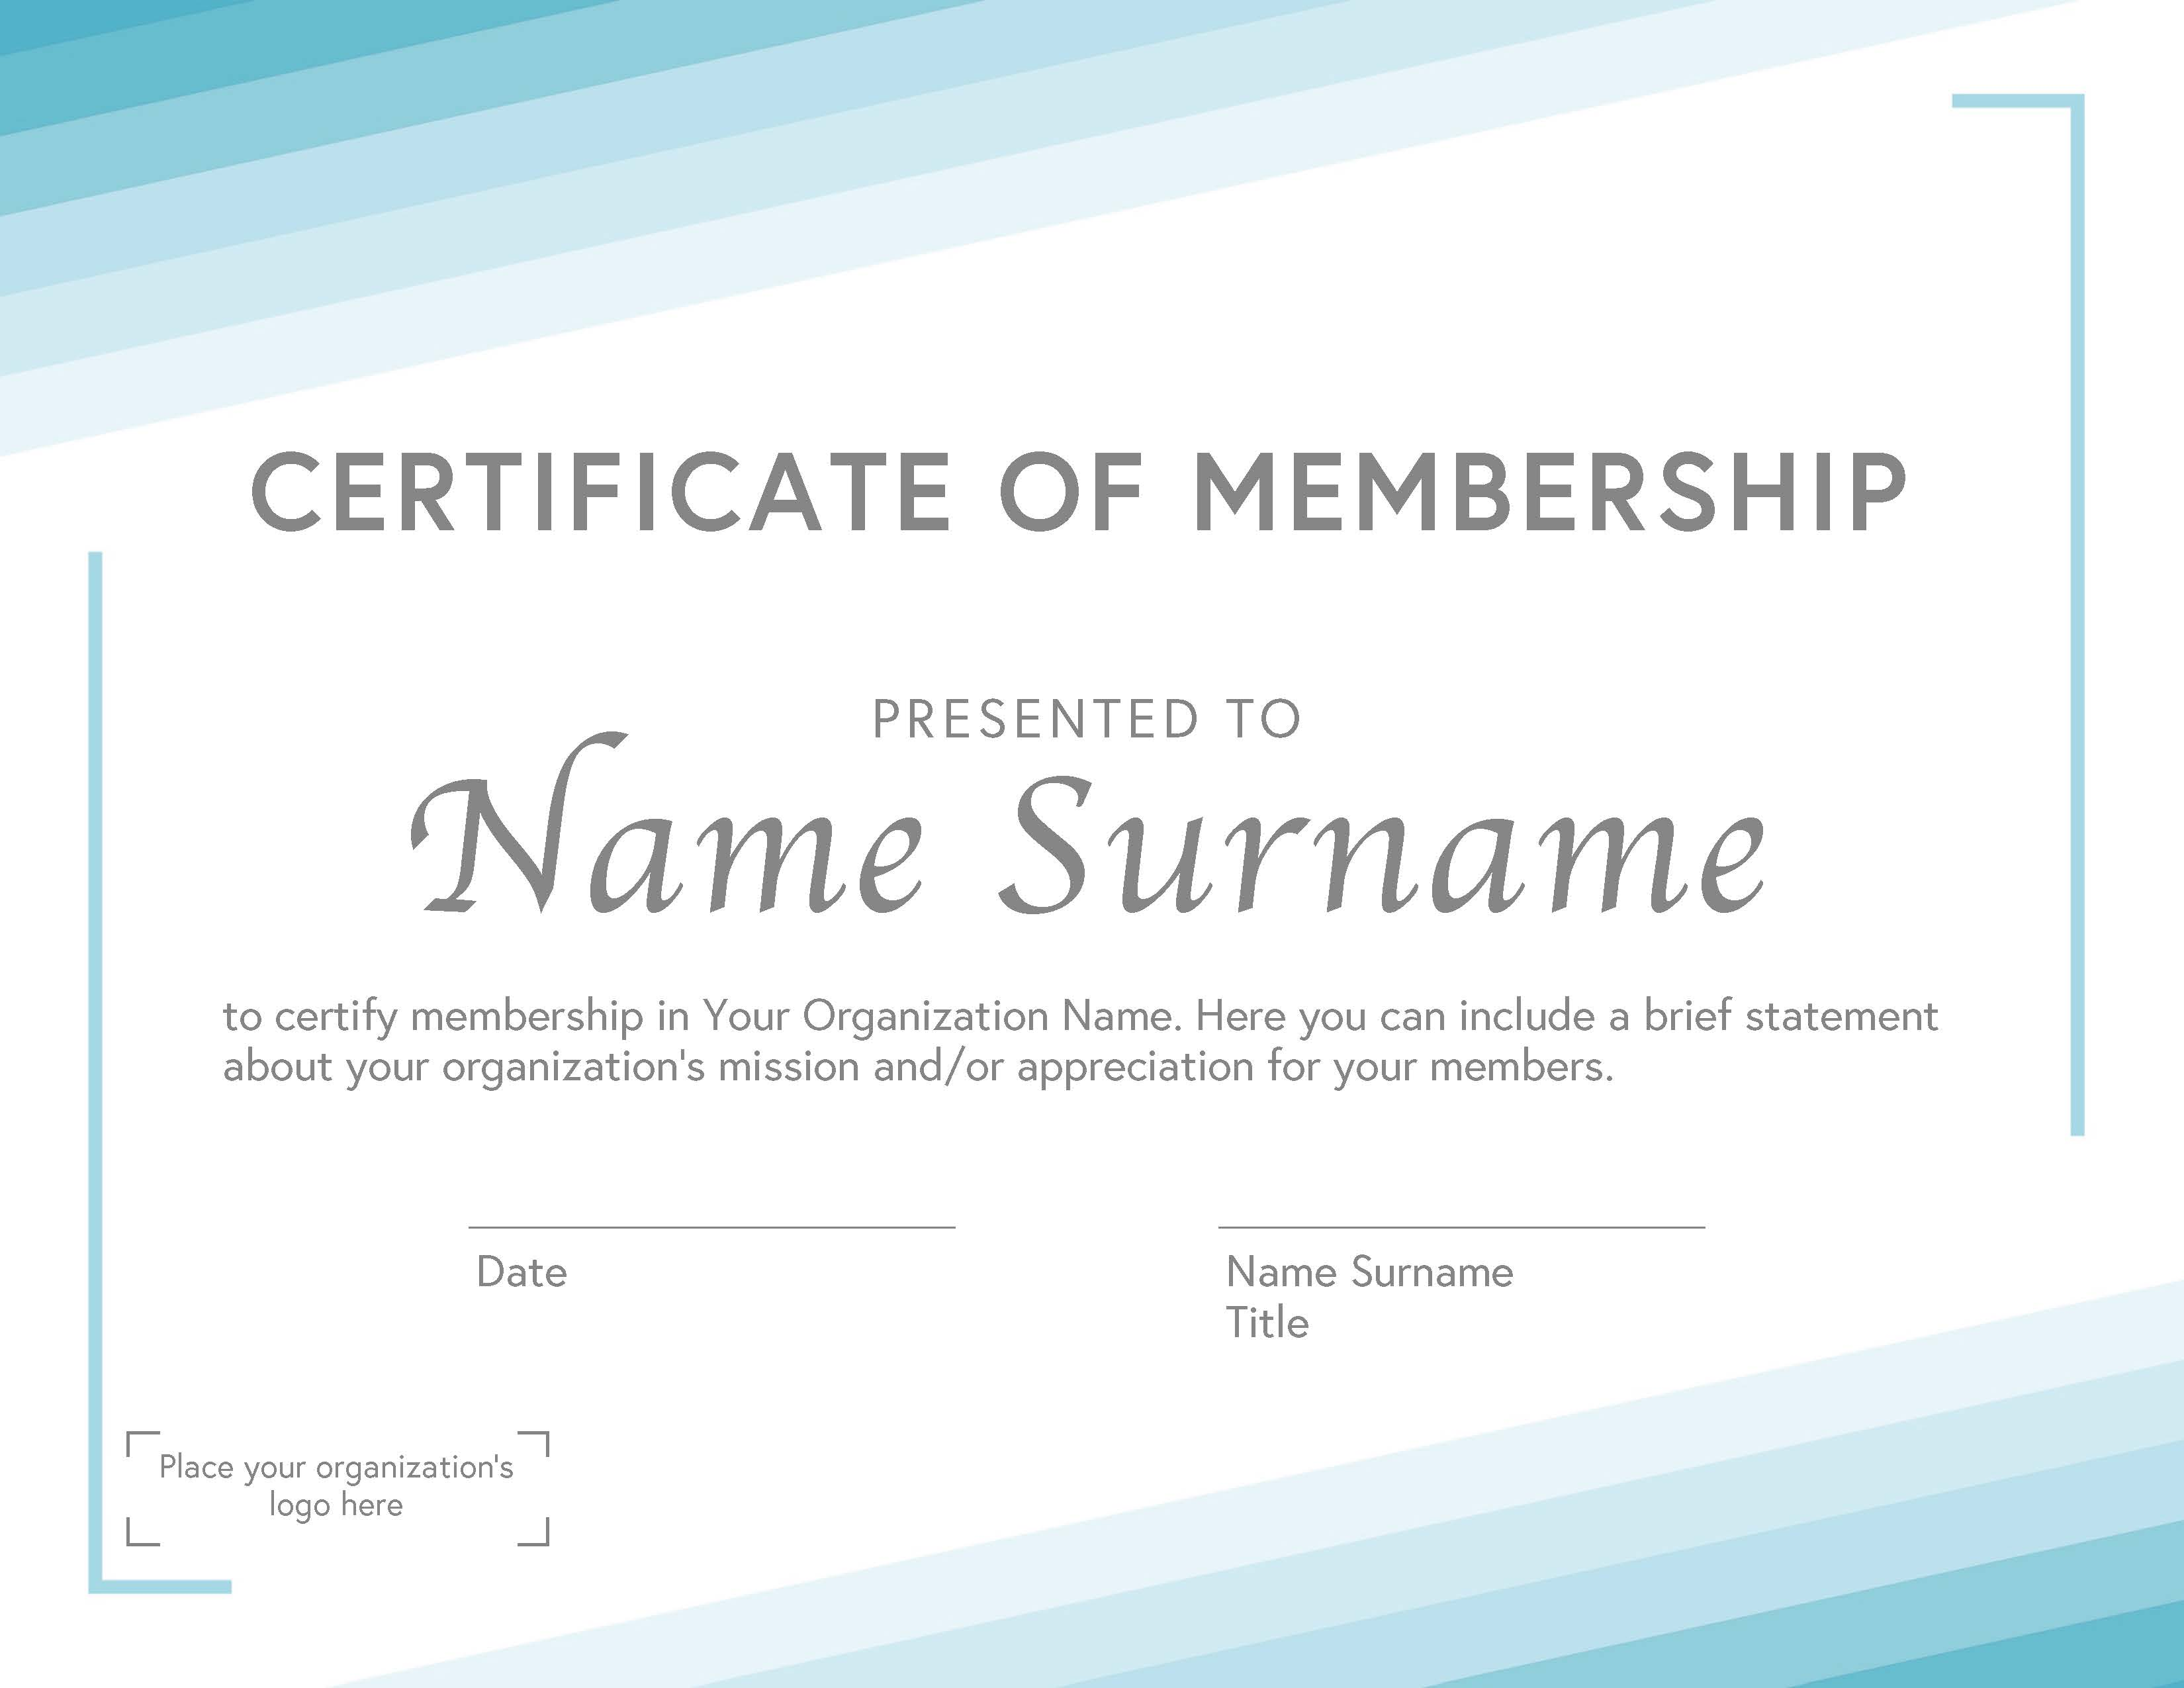 21 Membership Certificate Templates for Any Occasion (Free Download) In Running Certificates Templates Free